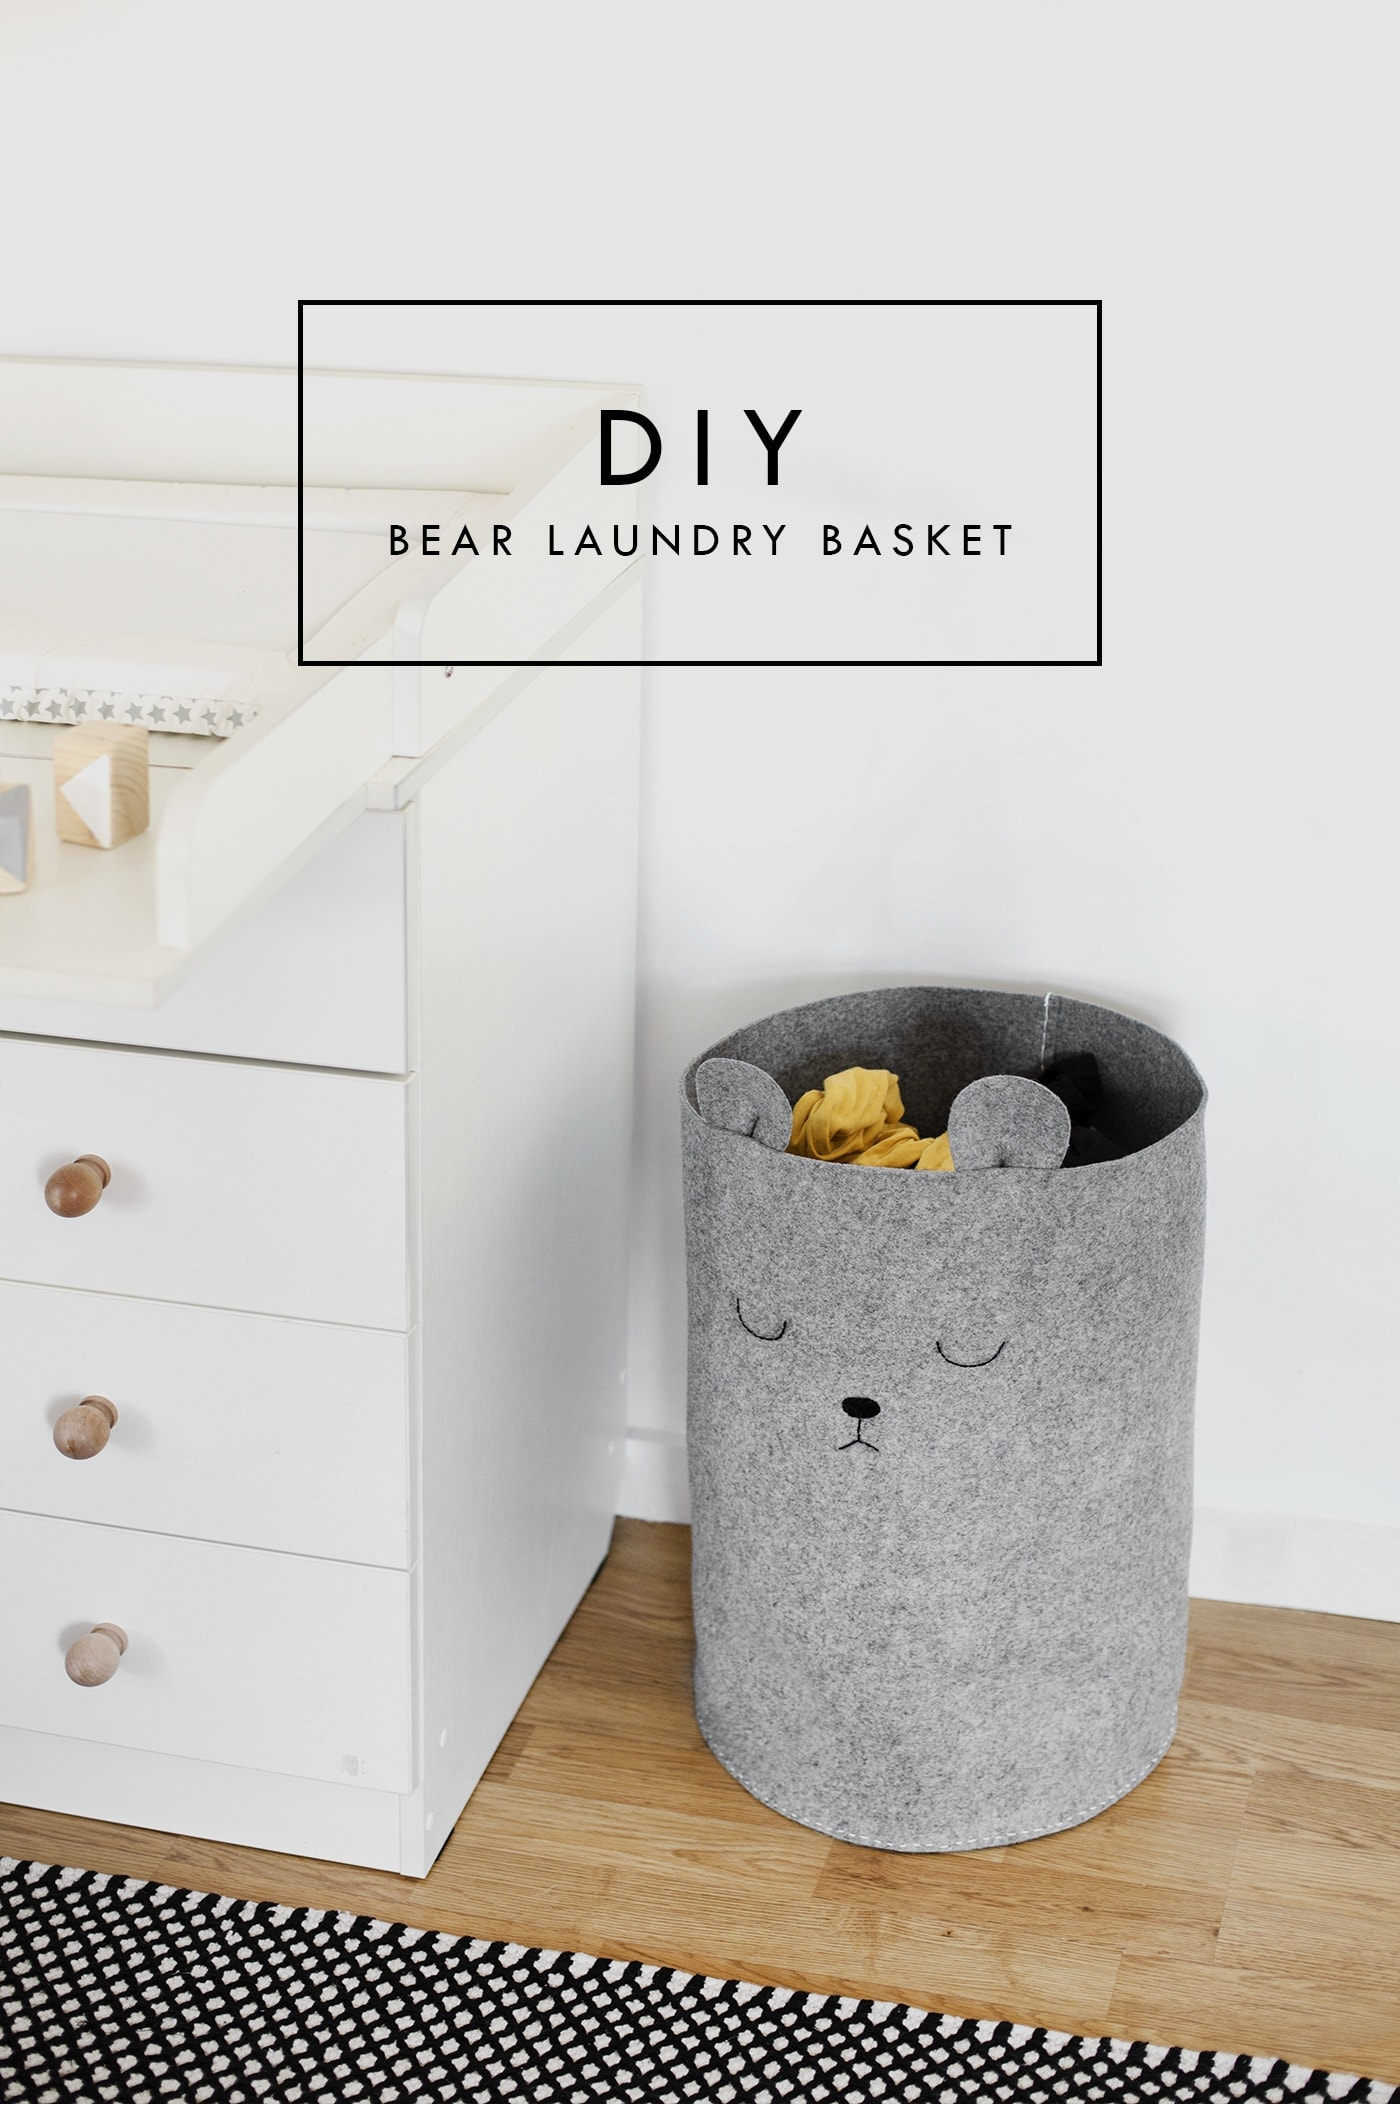 Pretty, Dirty Laundry: A Nursery DIY